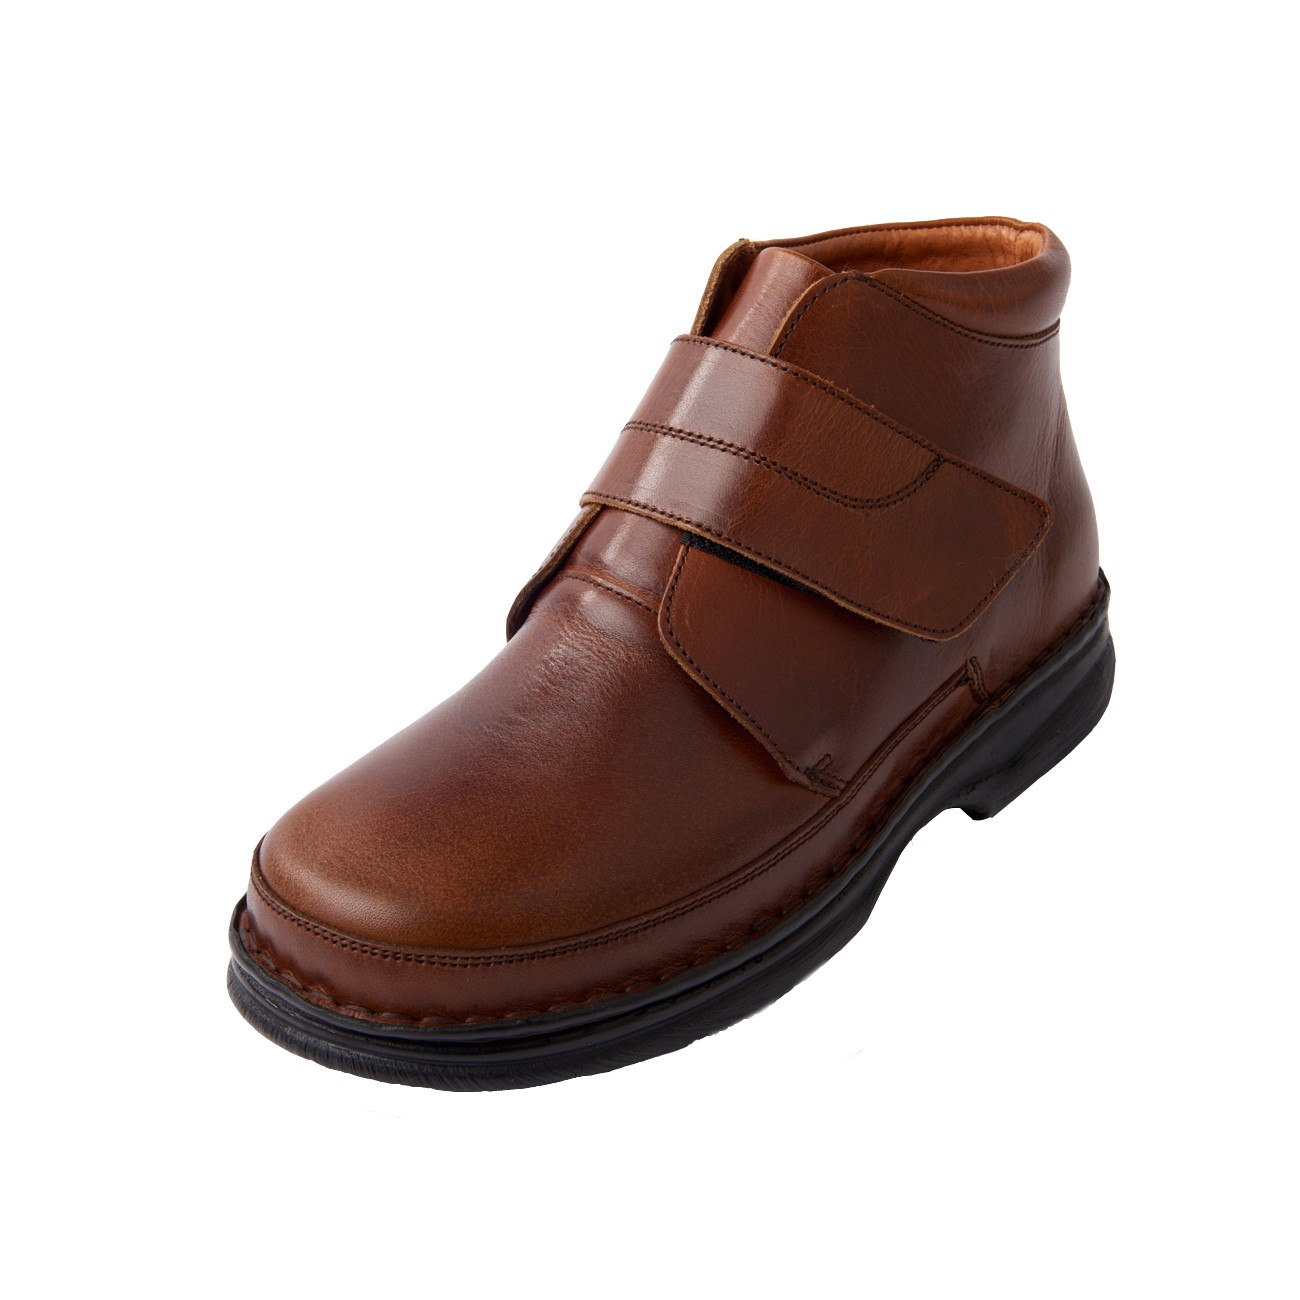 Brett Ultra Wide Boot and men's wider fitting boots